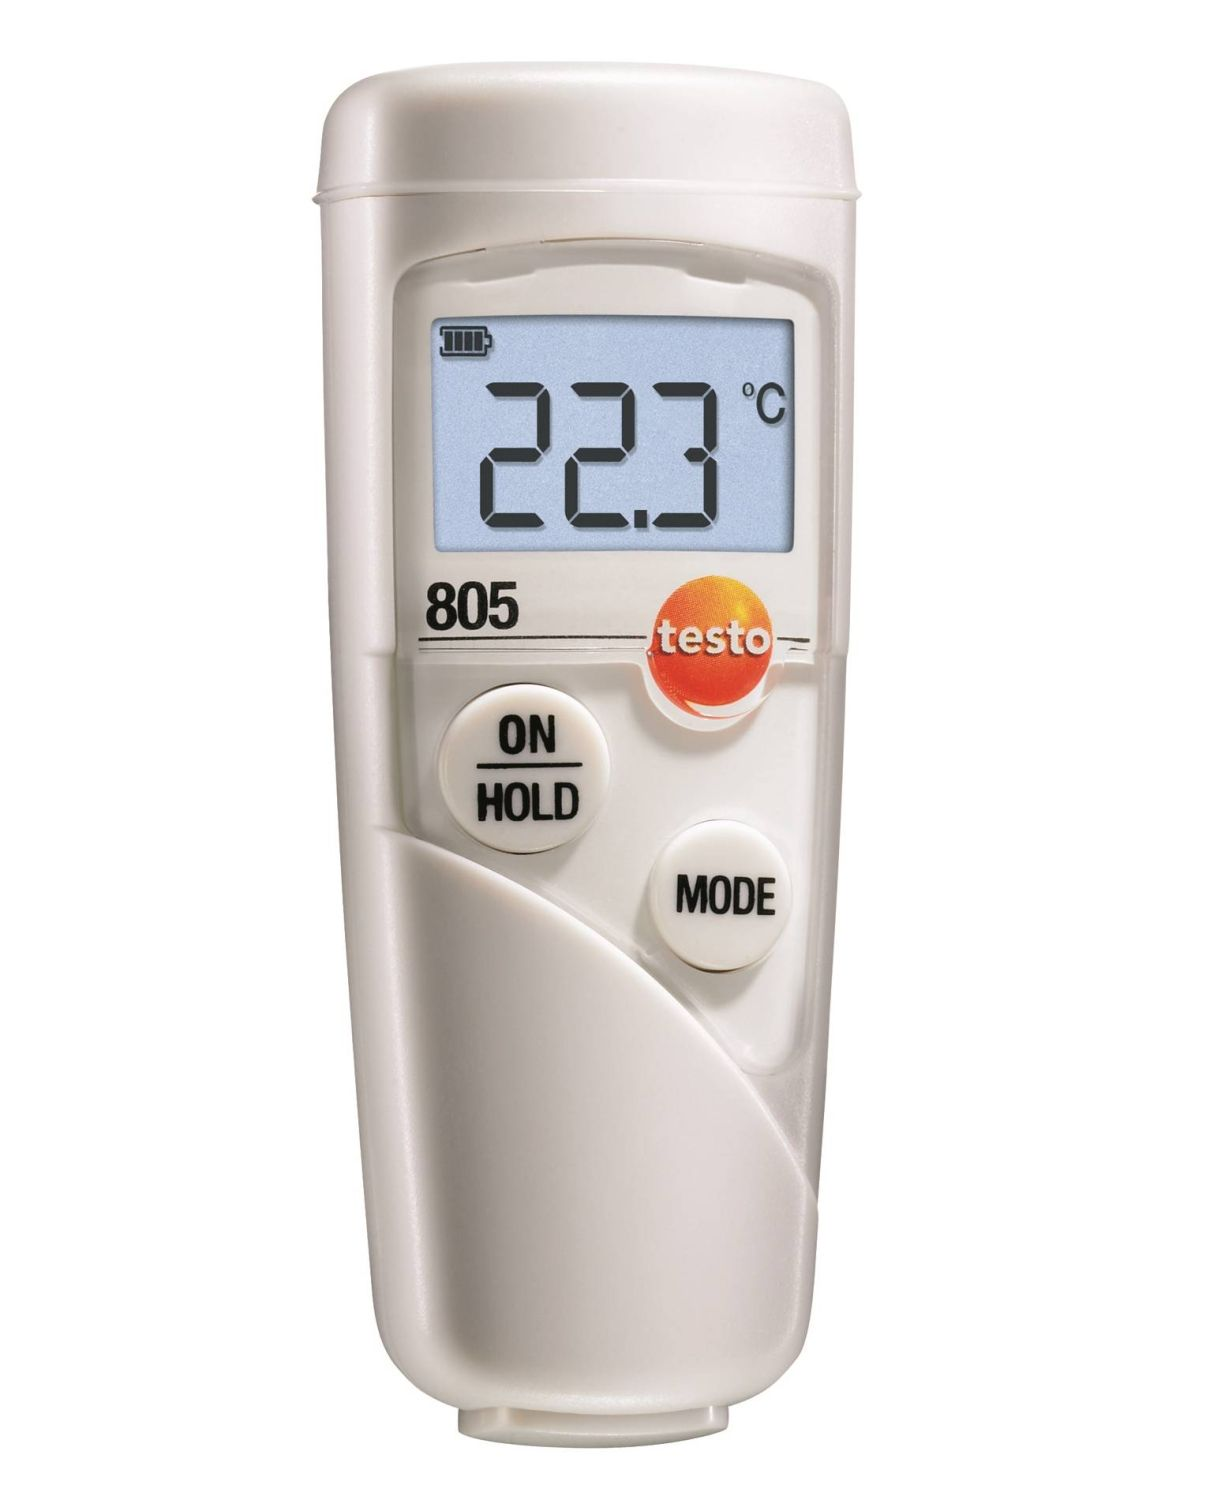 testo-805-mini-infrared-thermometer